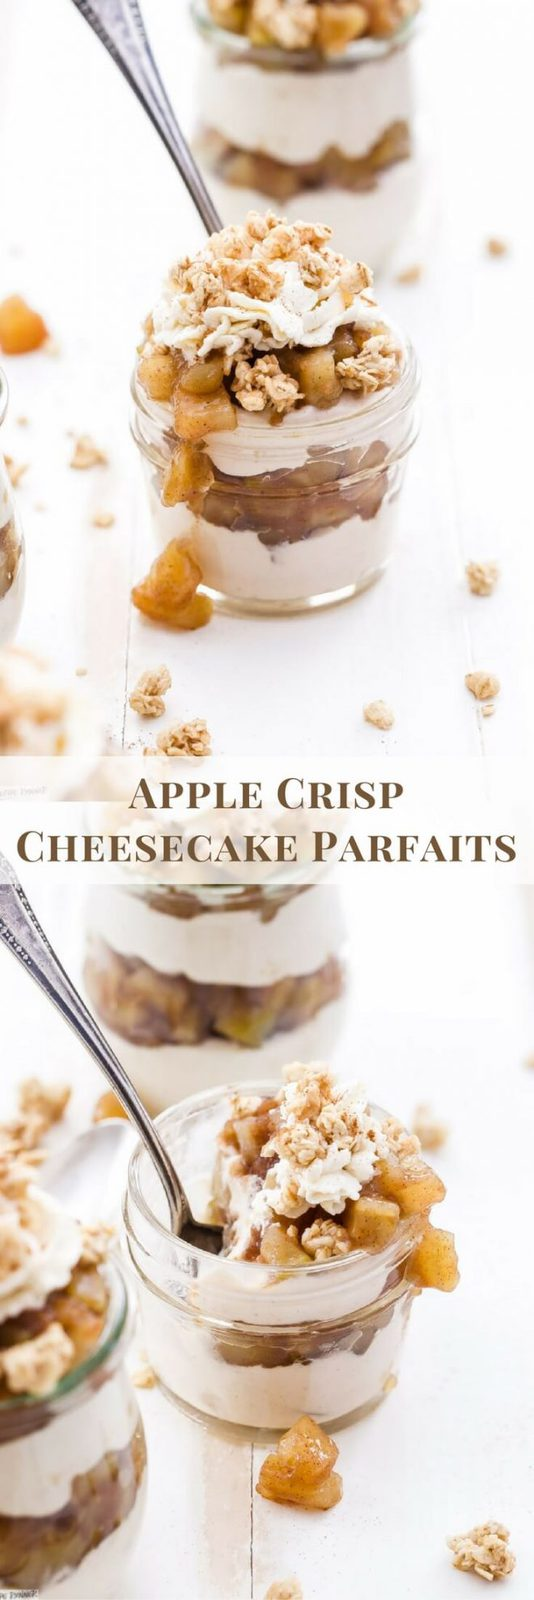 Apple Crisp Cheesecake Parfaits are the perfect dessert for fall and the upcoming holidays! Layers of creamy cinnamon cheesecake, apple pie filling and all topped off with crunchy granola and whipped cream.